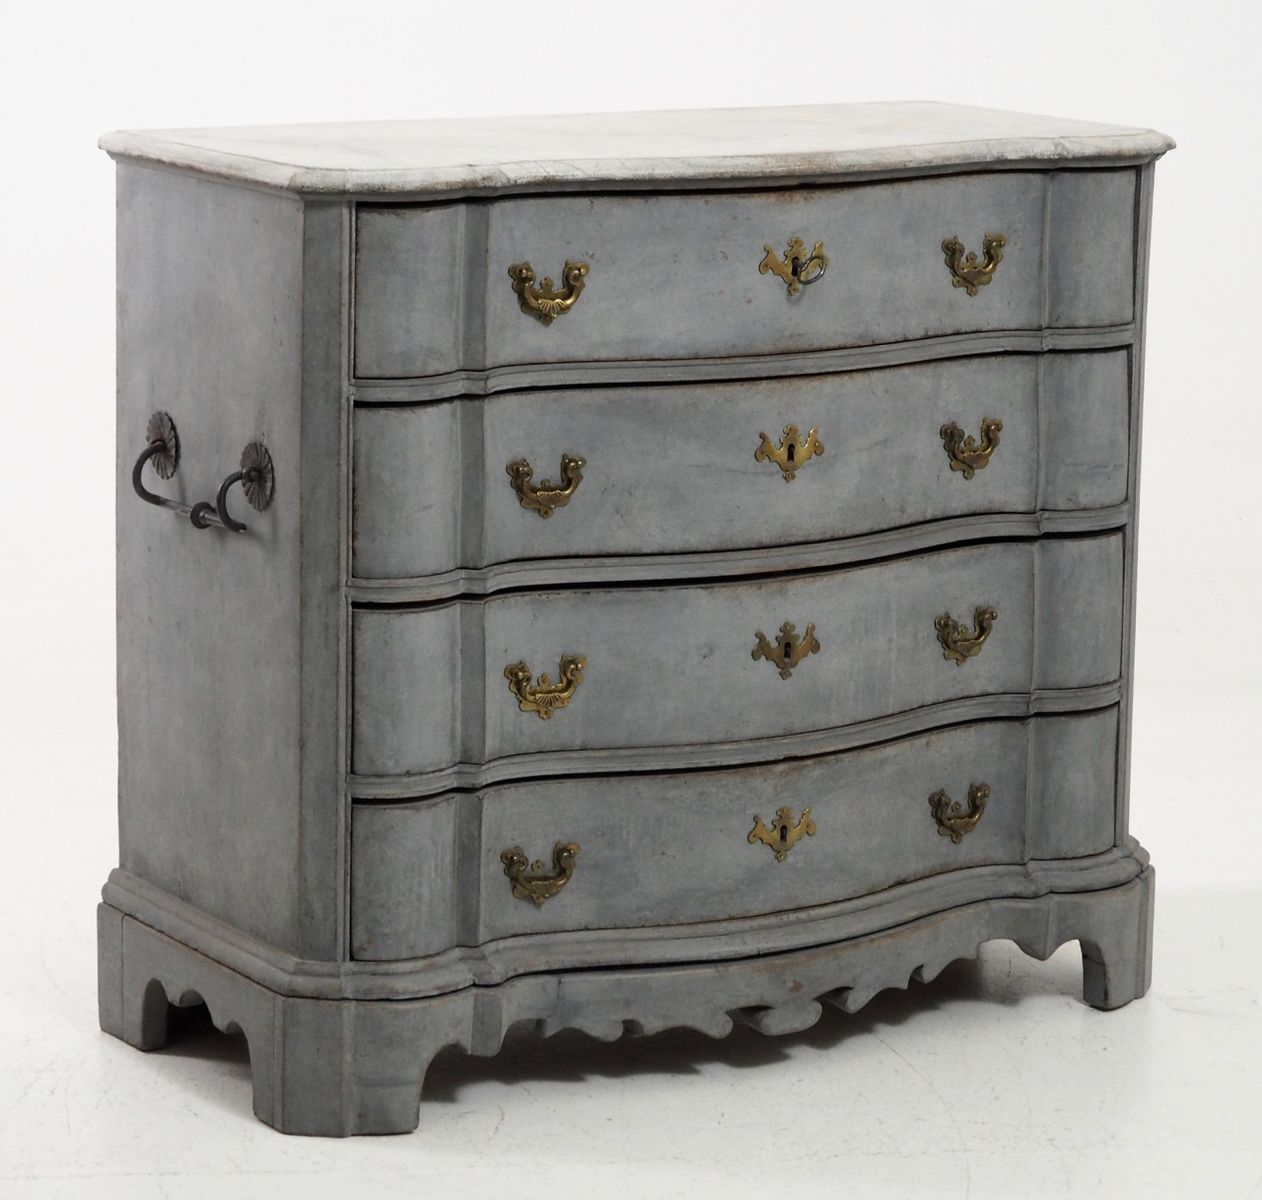 commode antique scandinave avec poign es en fer 1750s en vente sur pamono. Black Bedroom Furniture Sets. Home Design Ideas